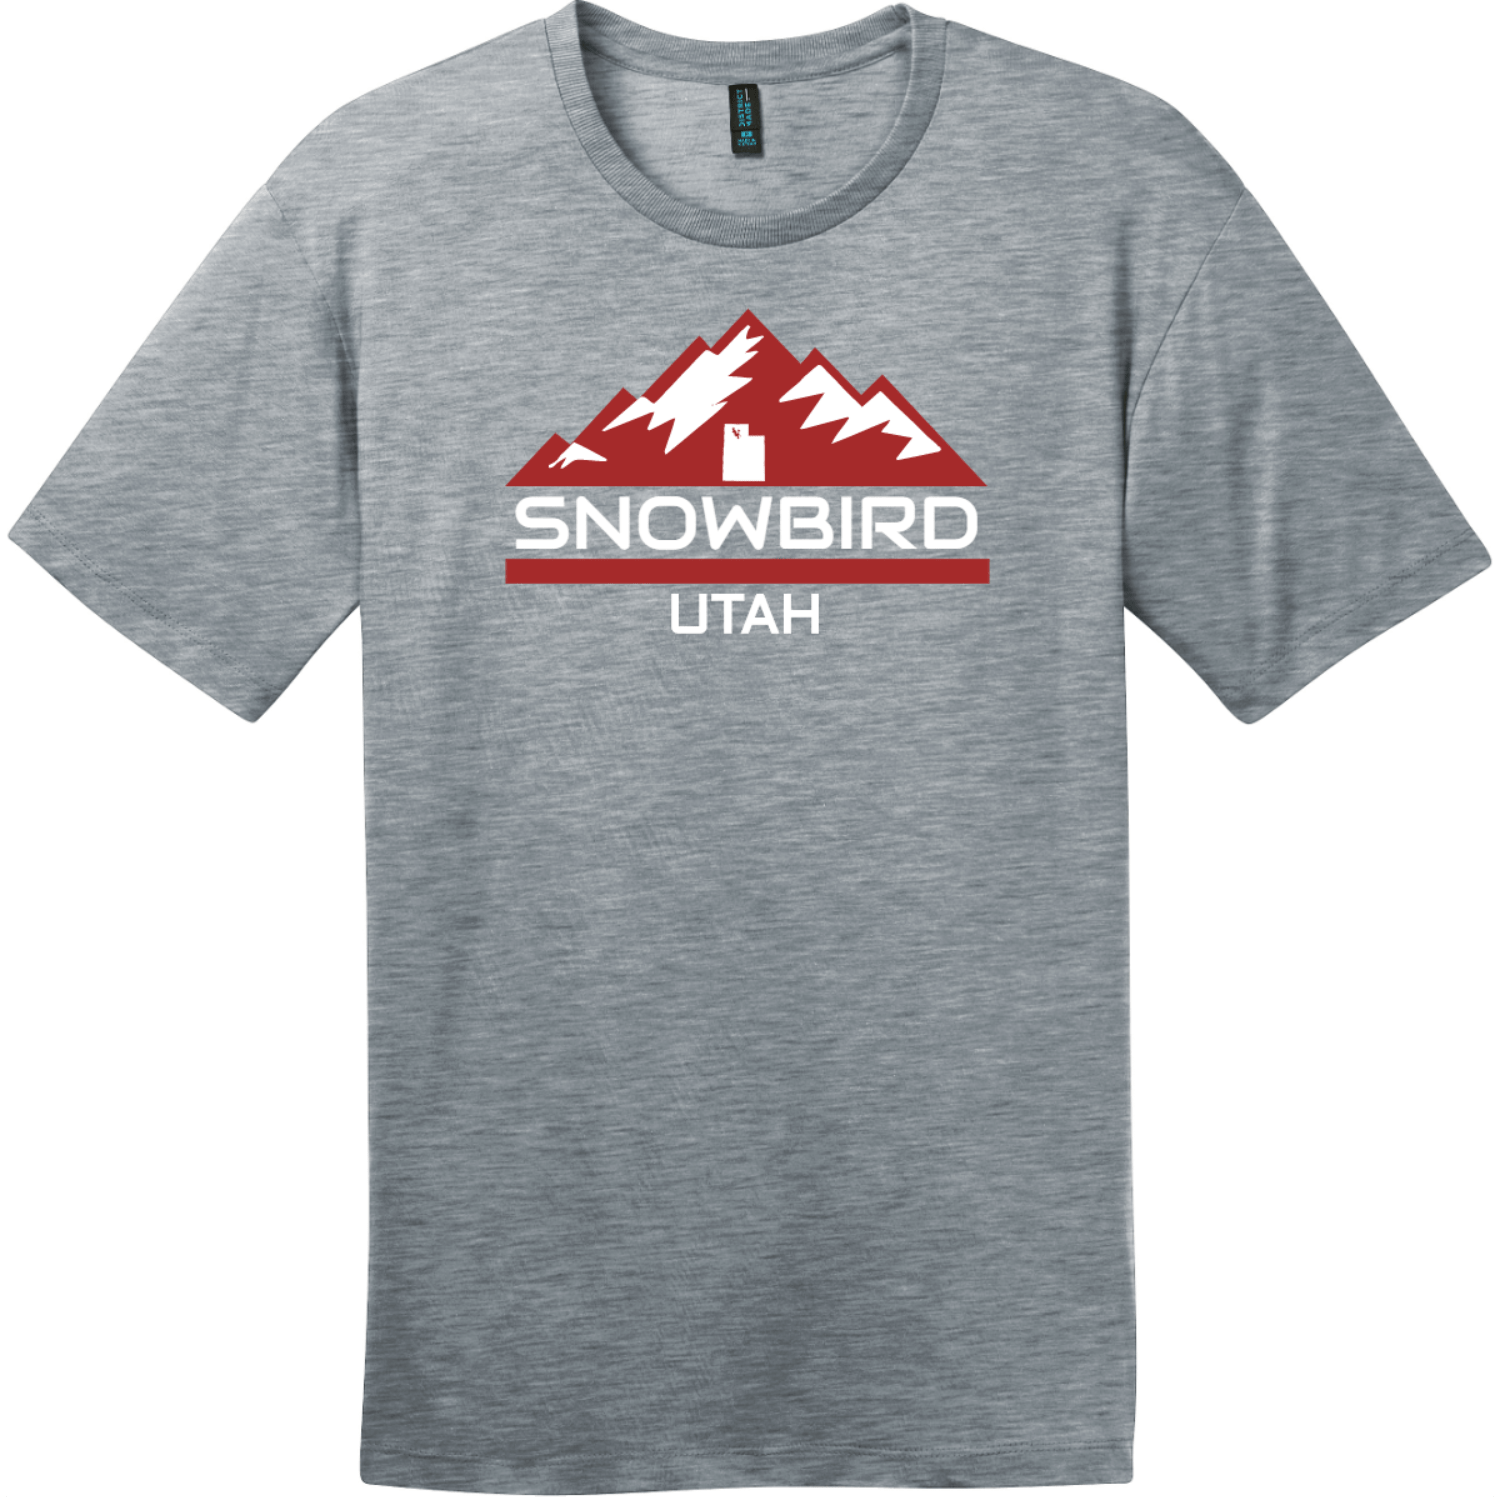 Snowbird Utah Mountain T-Shirt Heathered Steel District Perfect Weight Tee DT104